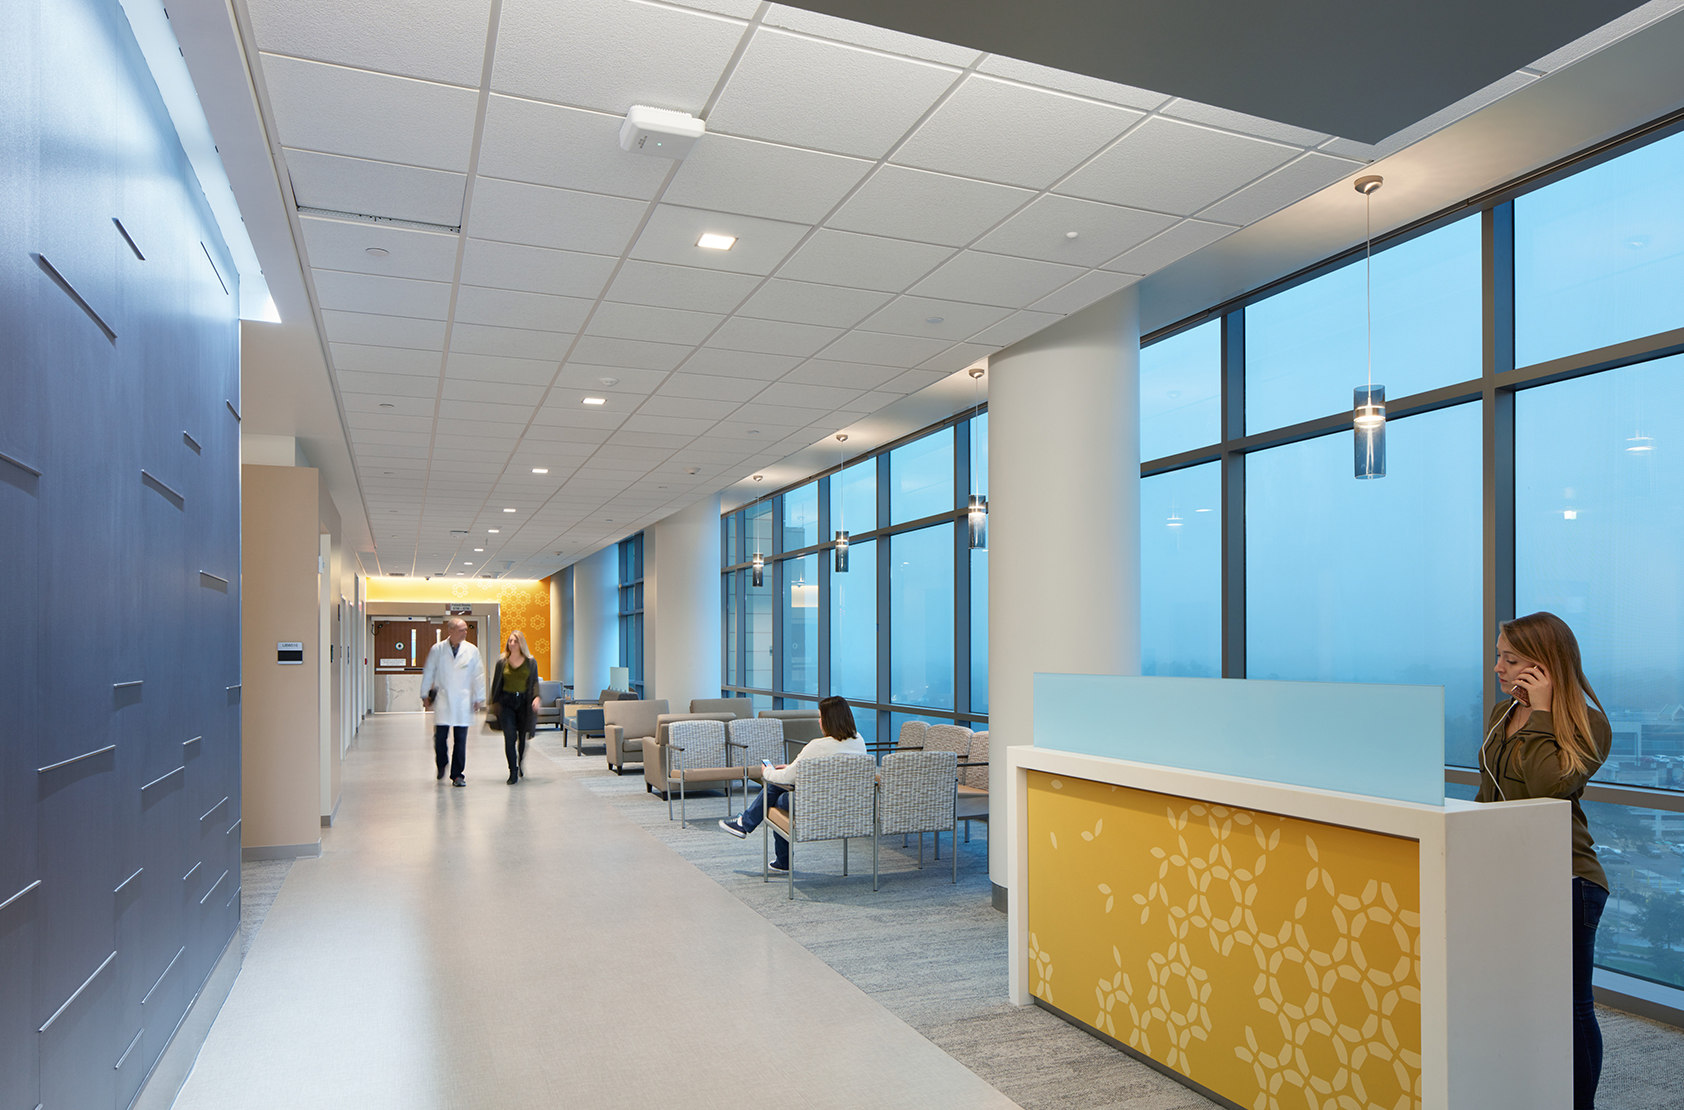 UF Health - Heart & Vascular Hospital and UF Health Neuromedicine Hospital